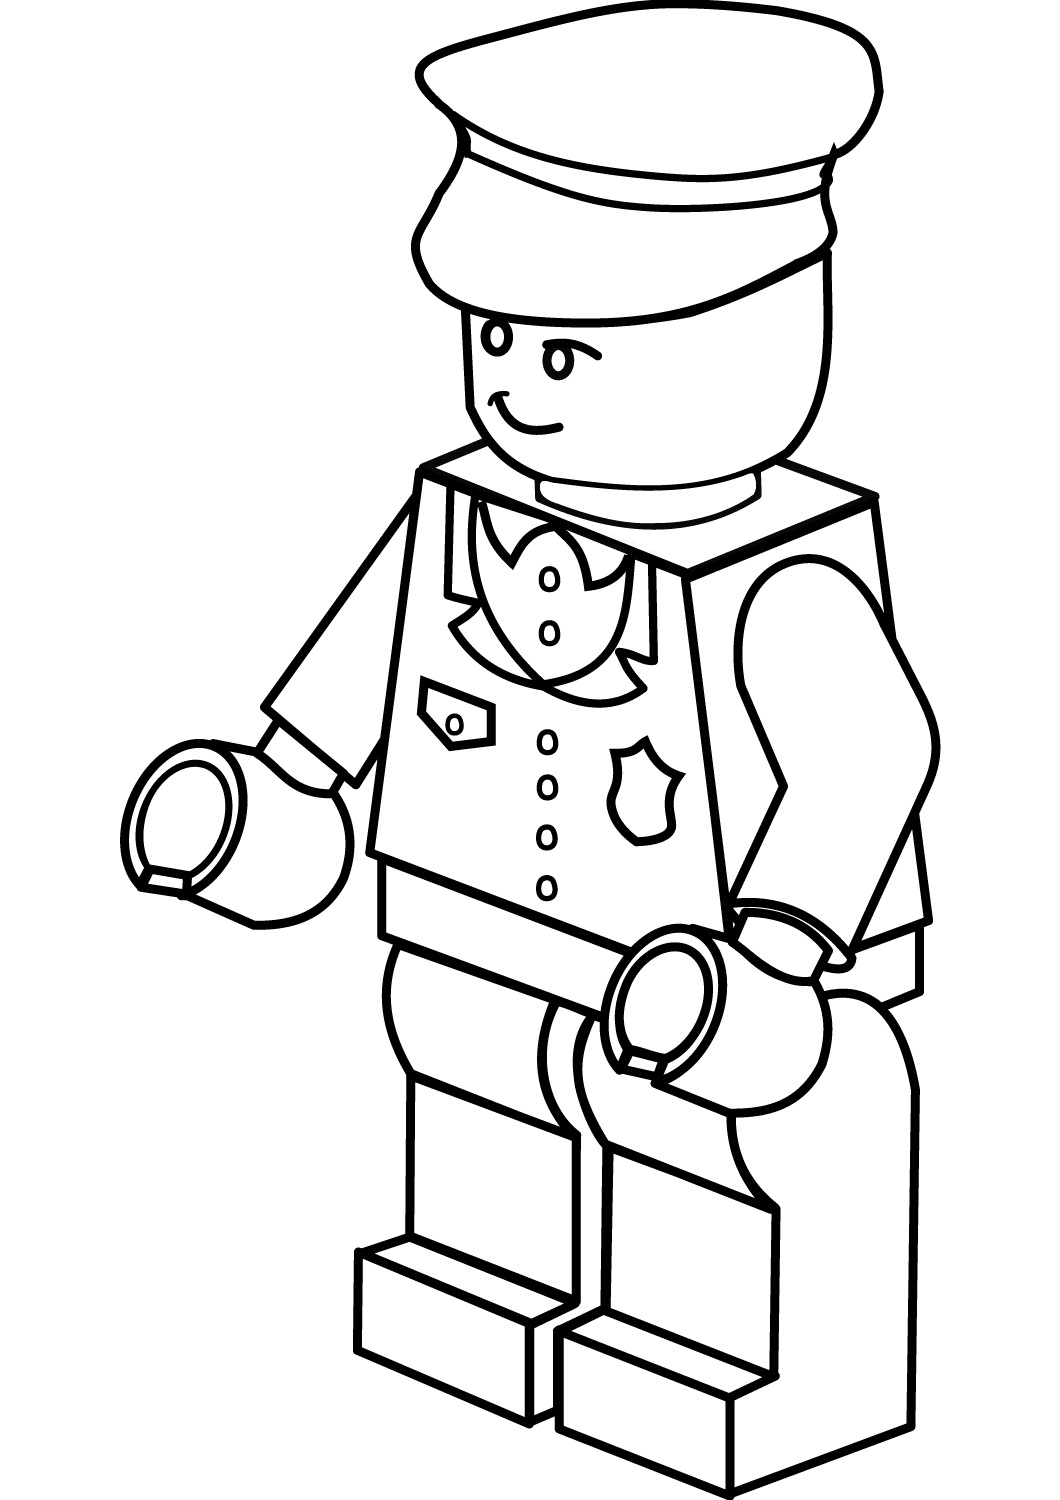 Building Blocks Coloring Pages At Getcolorings